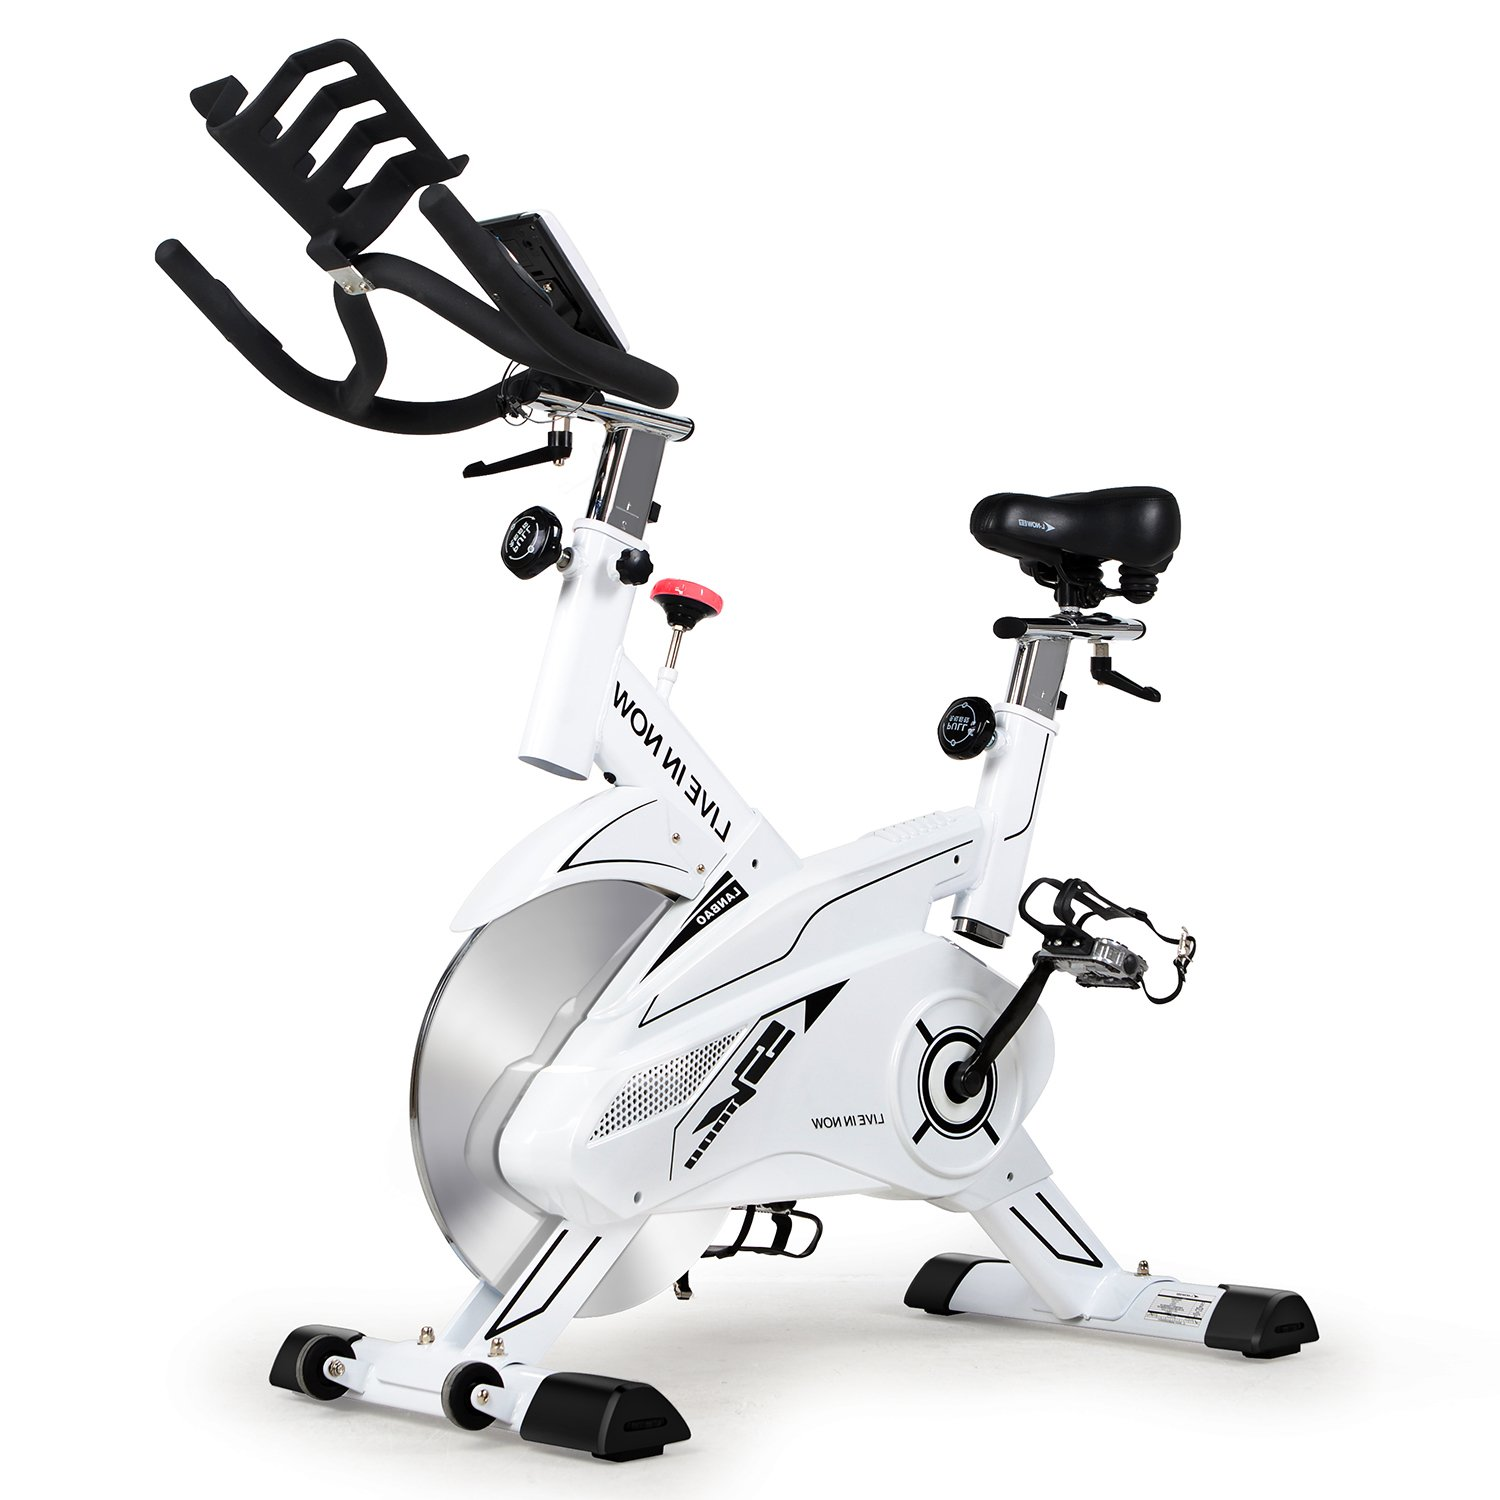 L NOW CycleFire LD-582 Health & Fitness Indoor Stationary Cycling Bike with Pulse for Aerobic and Cardio Exercise and Training(White) by L NOW (Image #1)